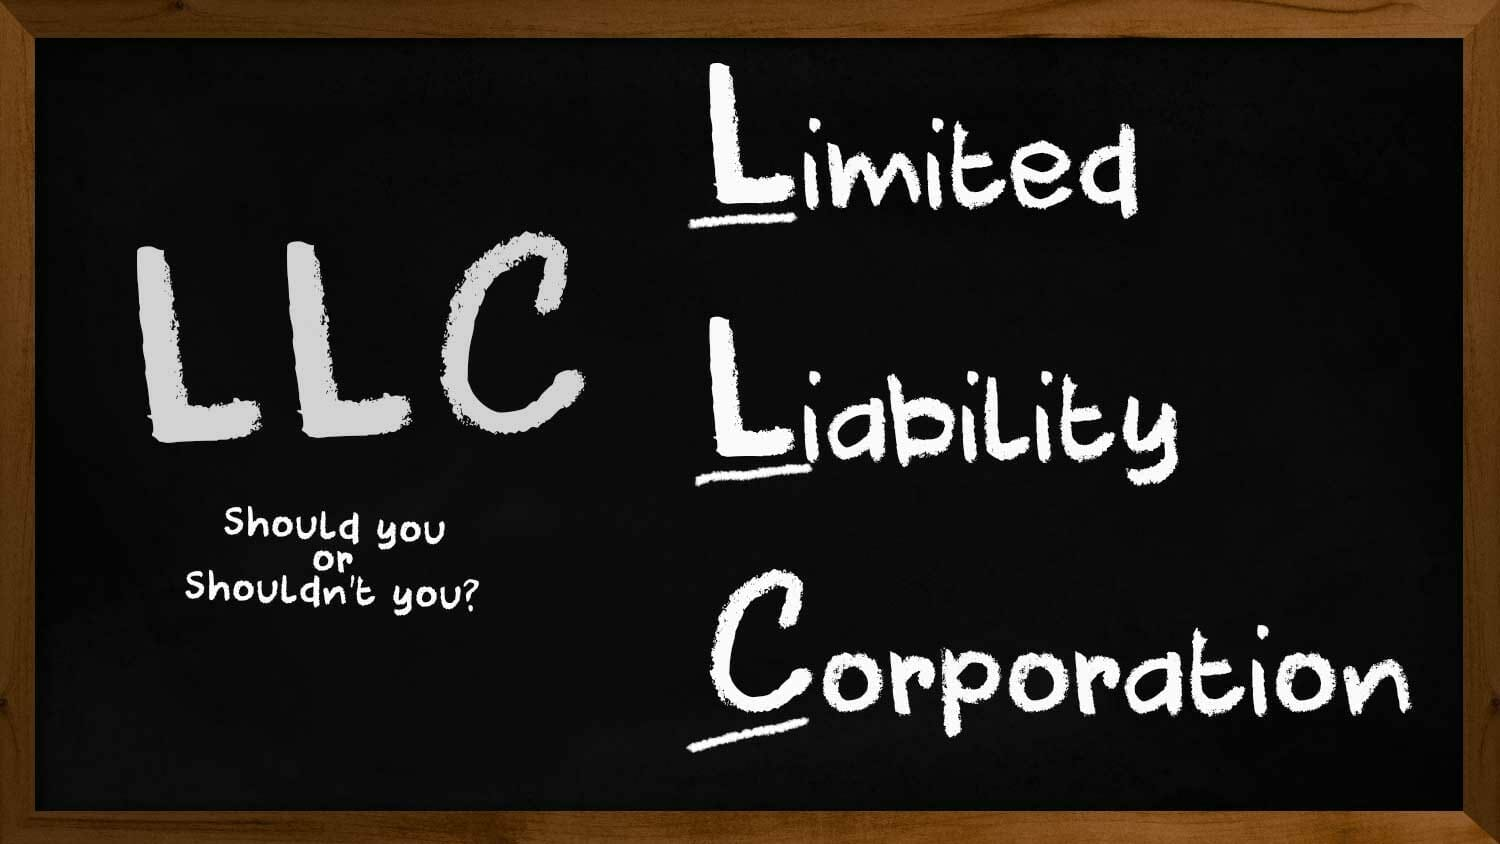 Is it possible to register an LLC in a residential apartment